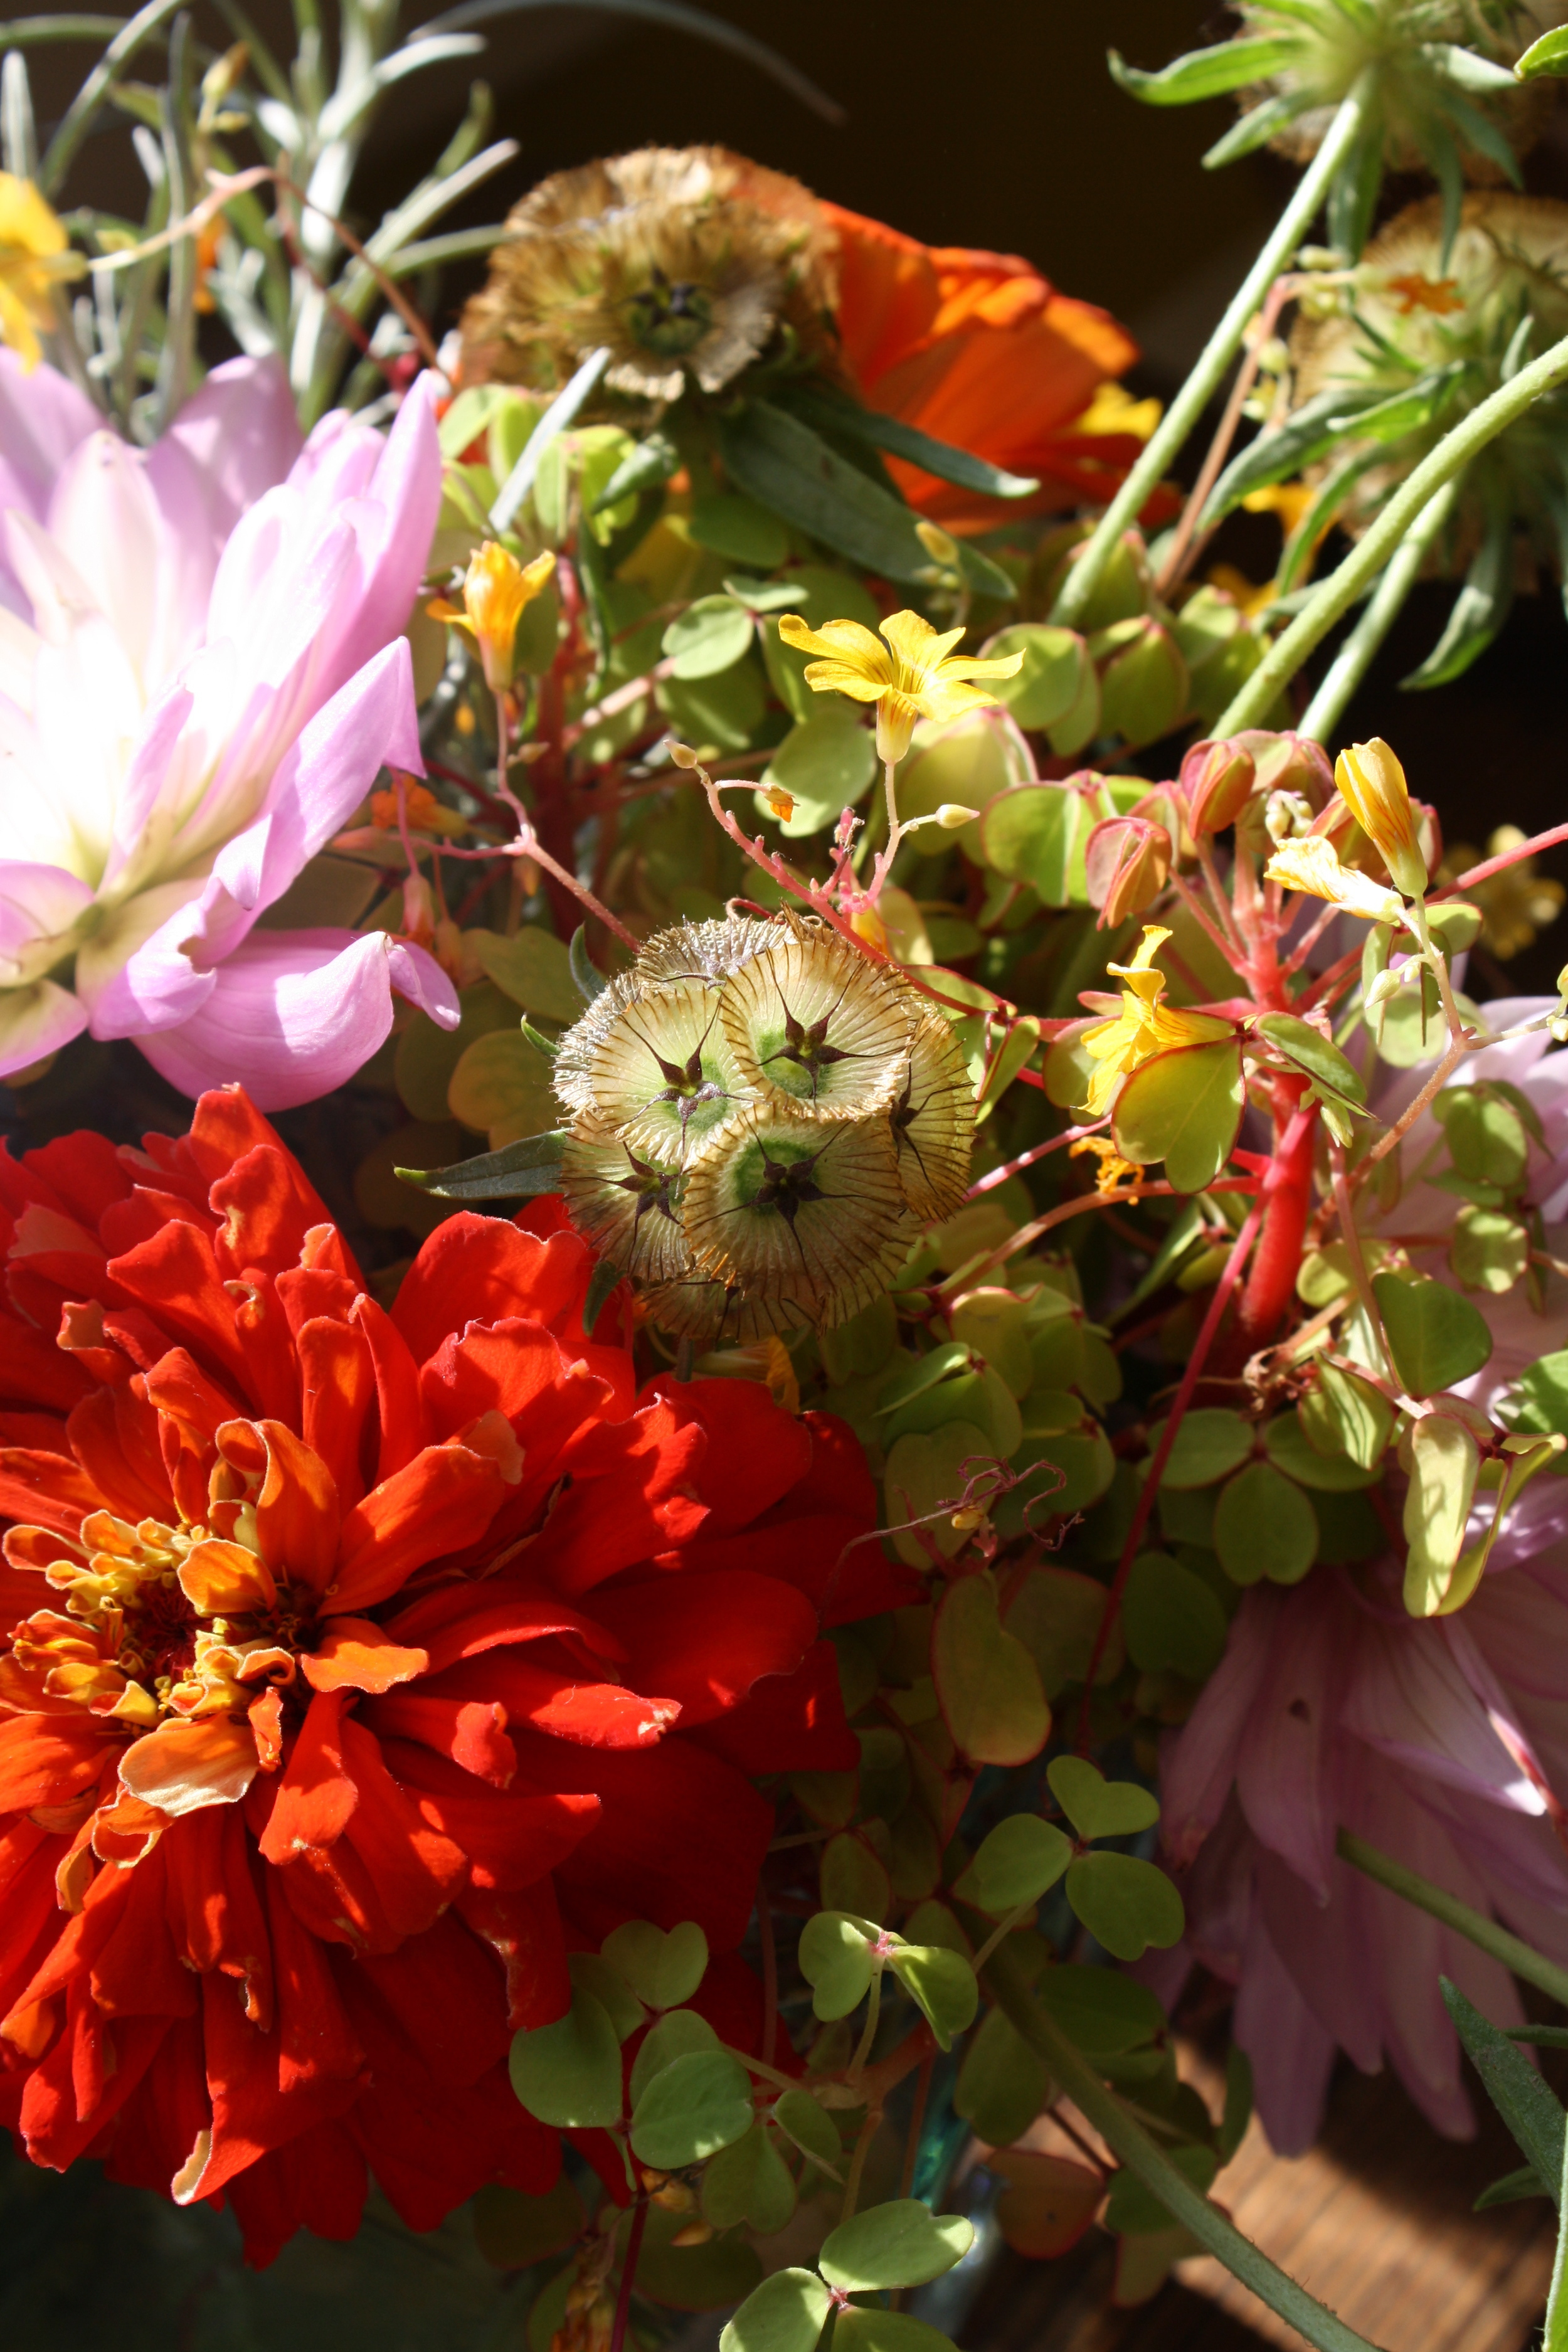 arrangement detail featuring 'Paper Moon' Scabiosa and 'Fireglow' Oxalis